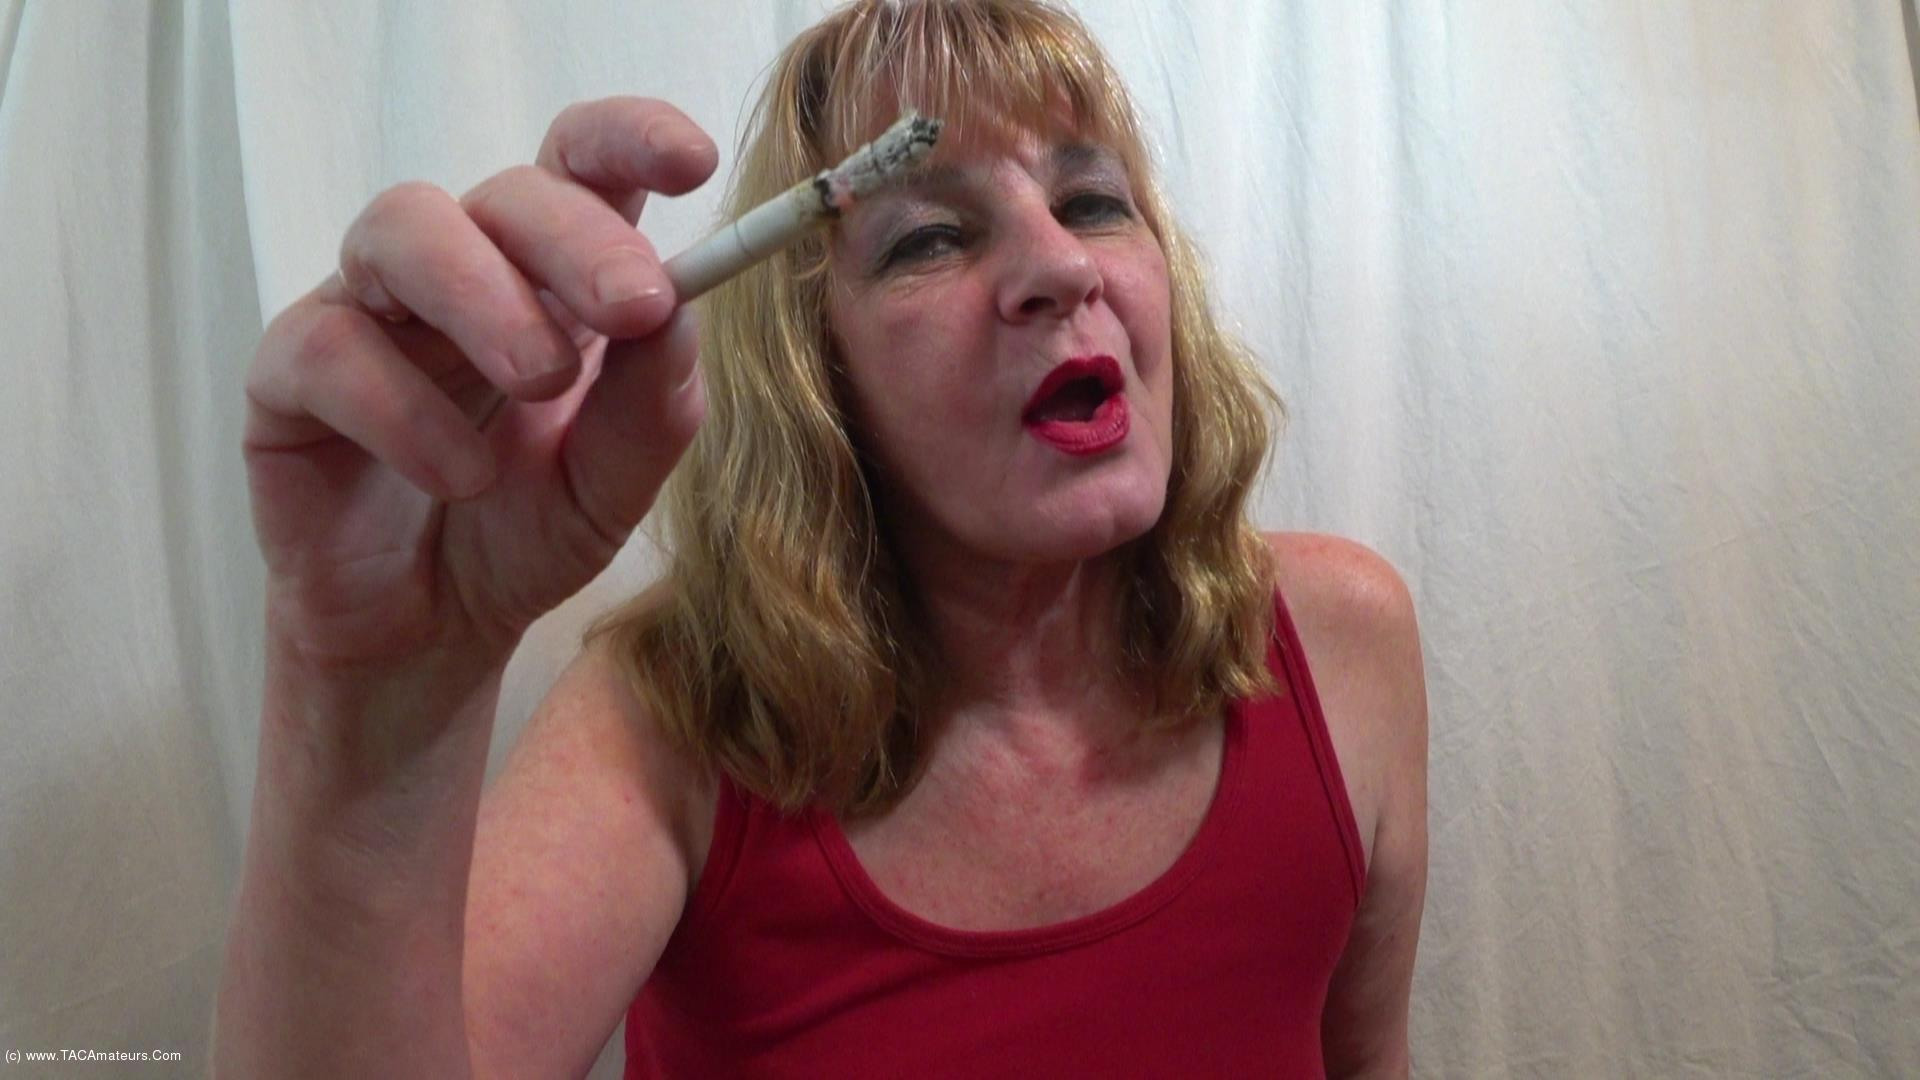 CougarBabeJolee - Smoking A Cigarette Using Your Cock As An Ashtray scene 3